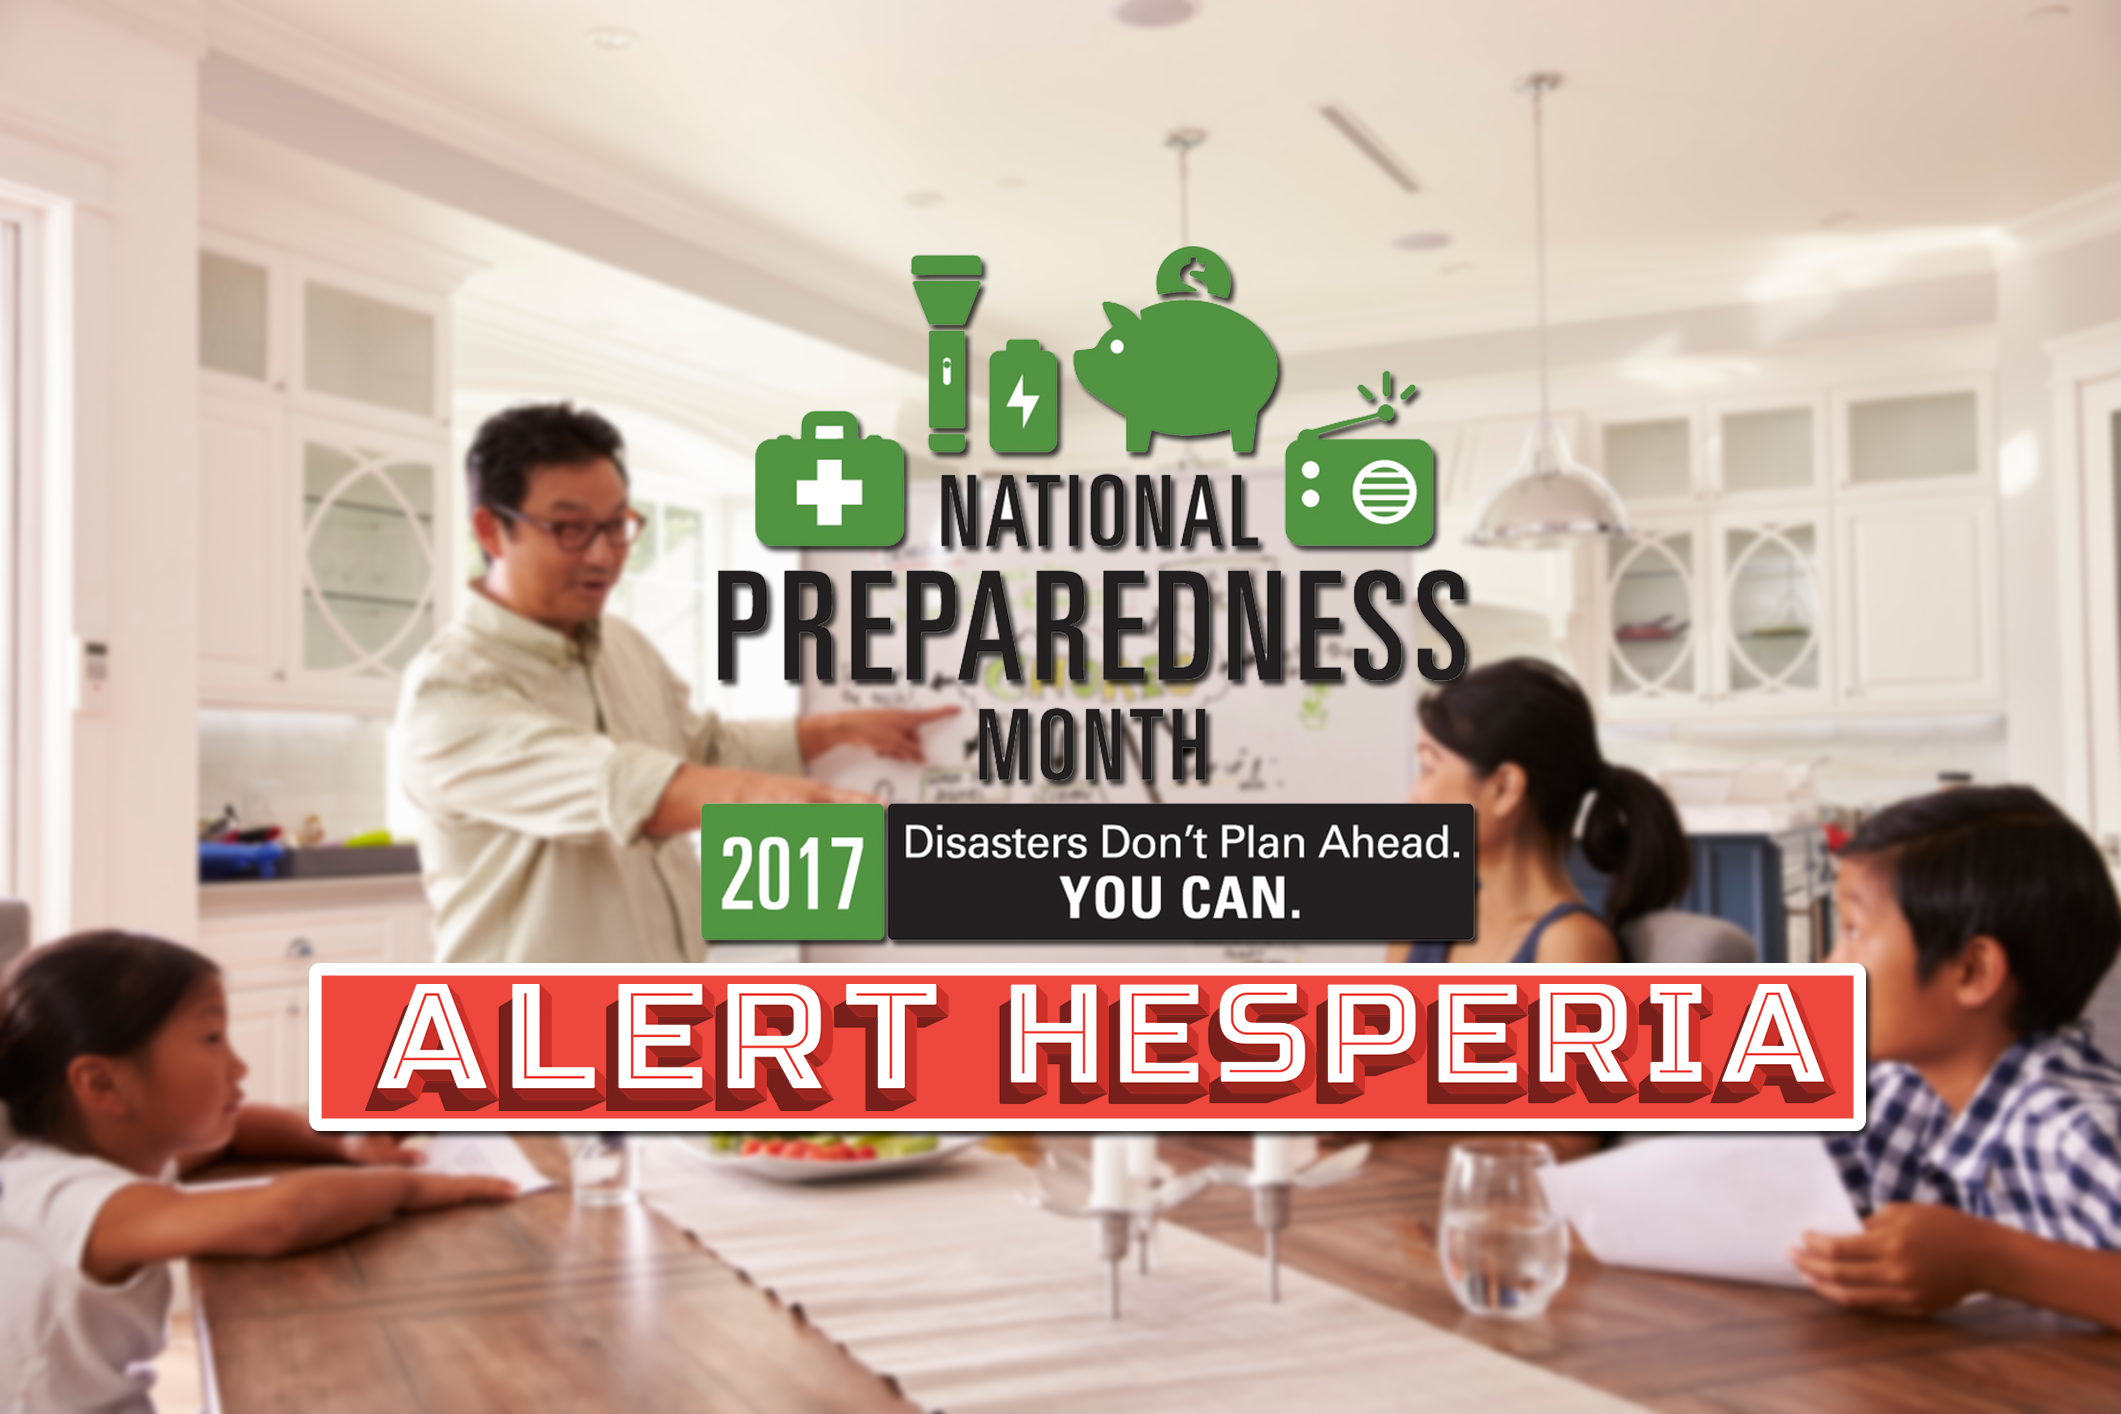 National-Preparedness-Month-Social-Media-Post-2017